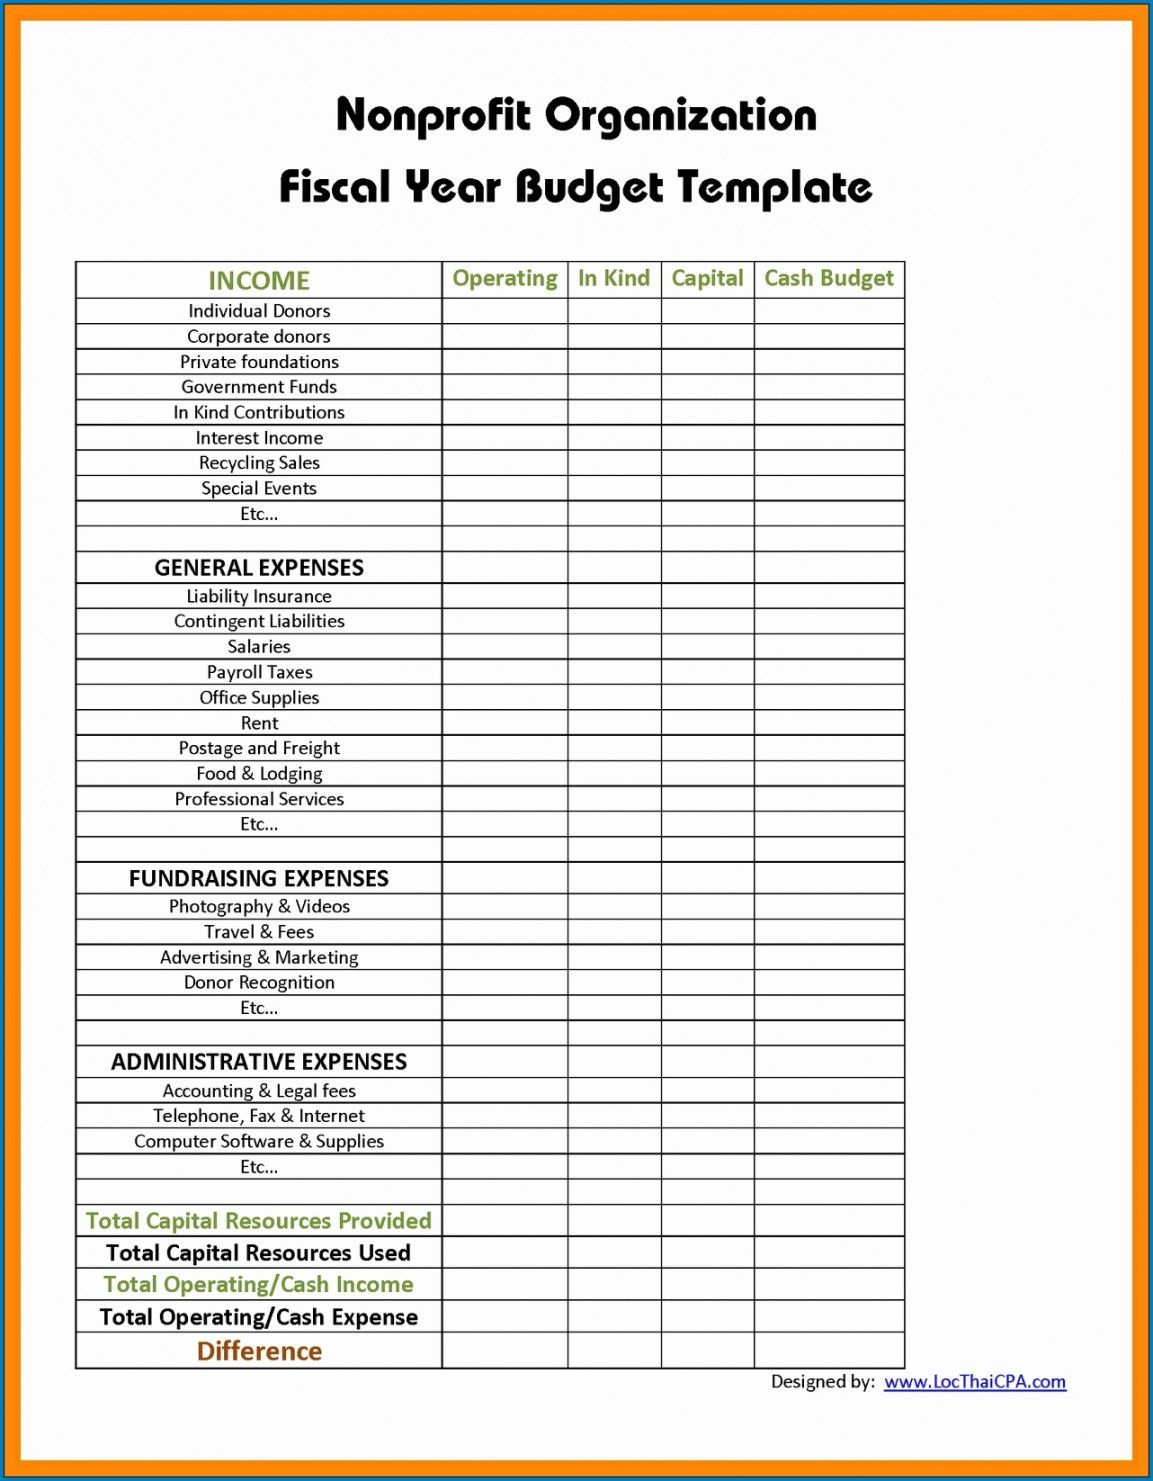 Get Our Example Of Small Nonprofit Budget Template Budget Template Budgeting Budget Template Free